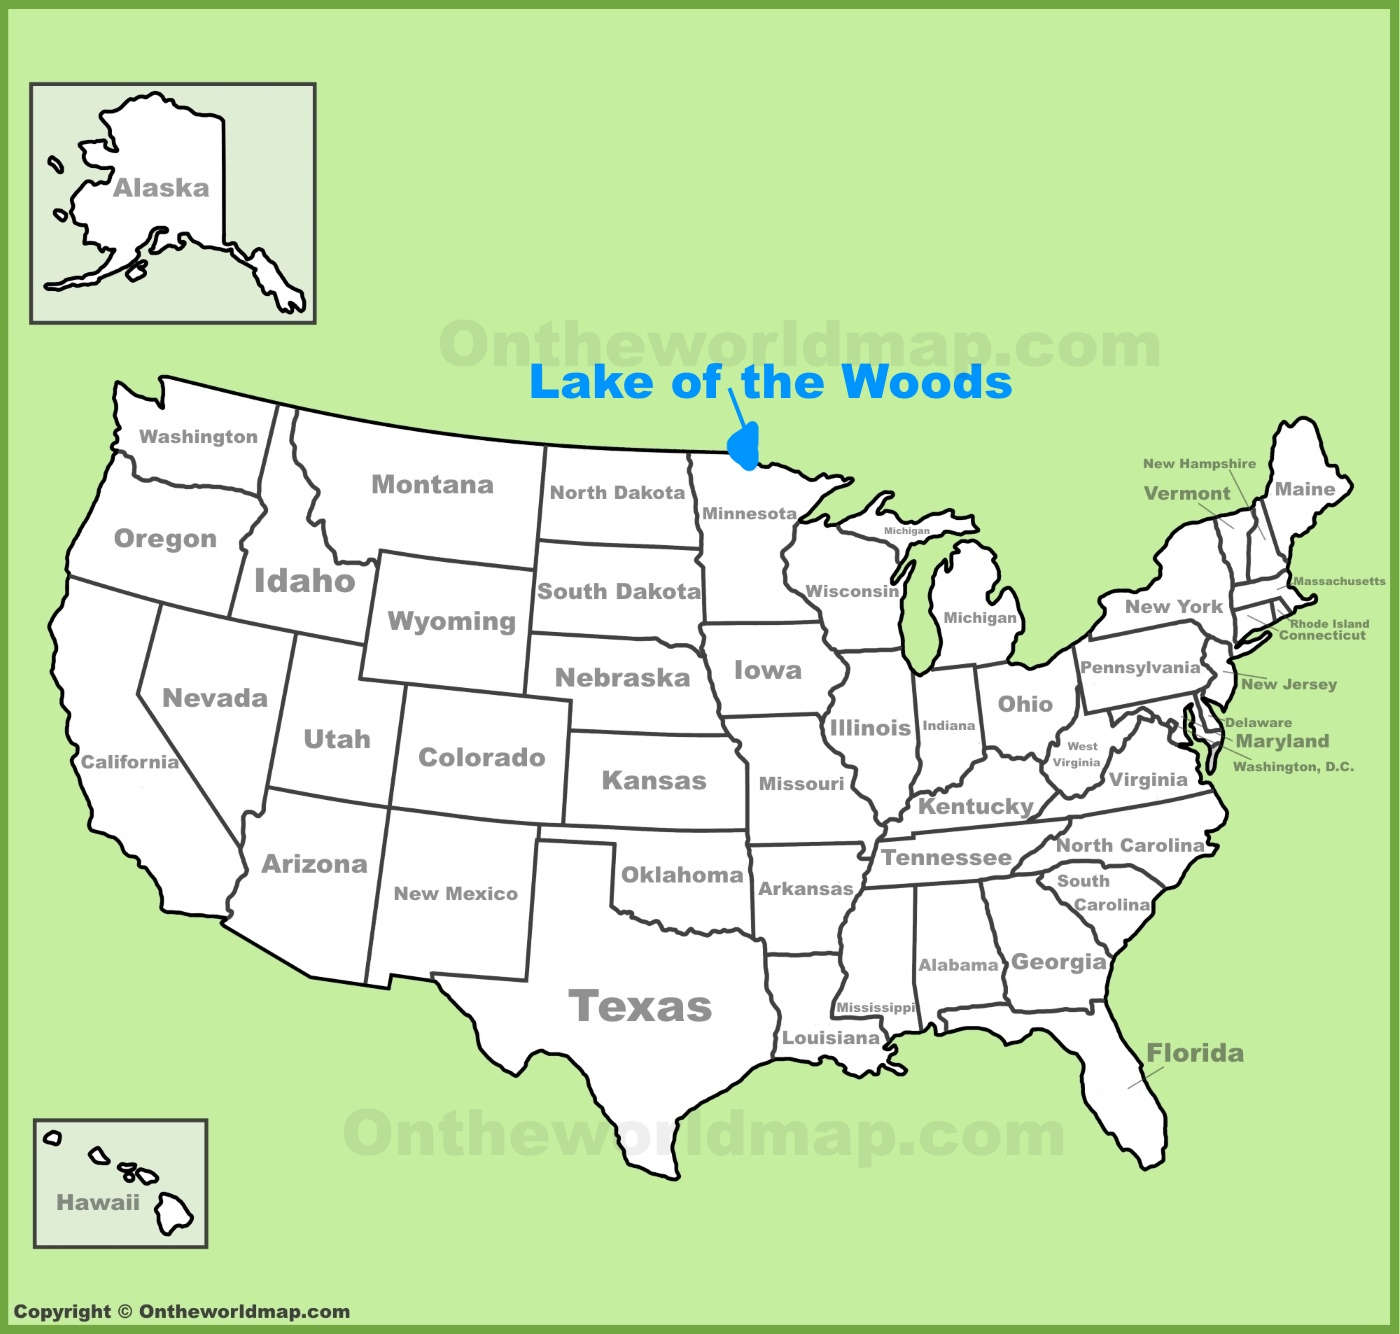 Lake of the Woods location on the US Map